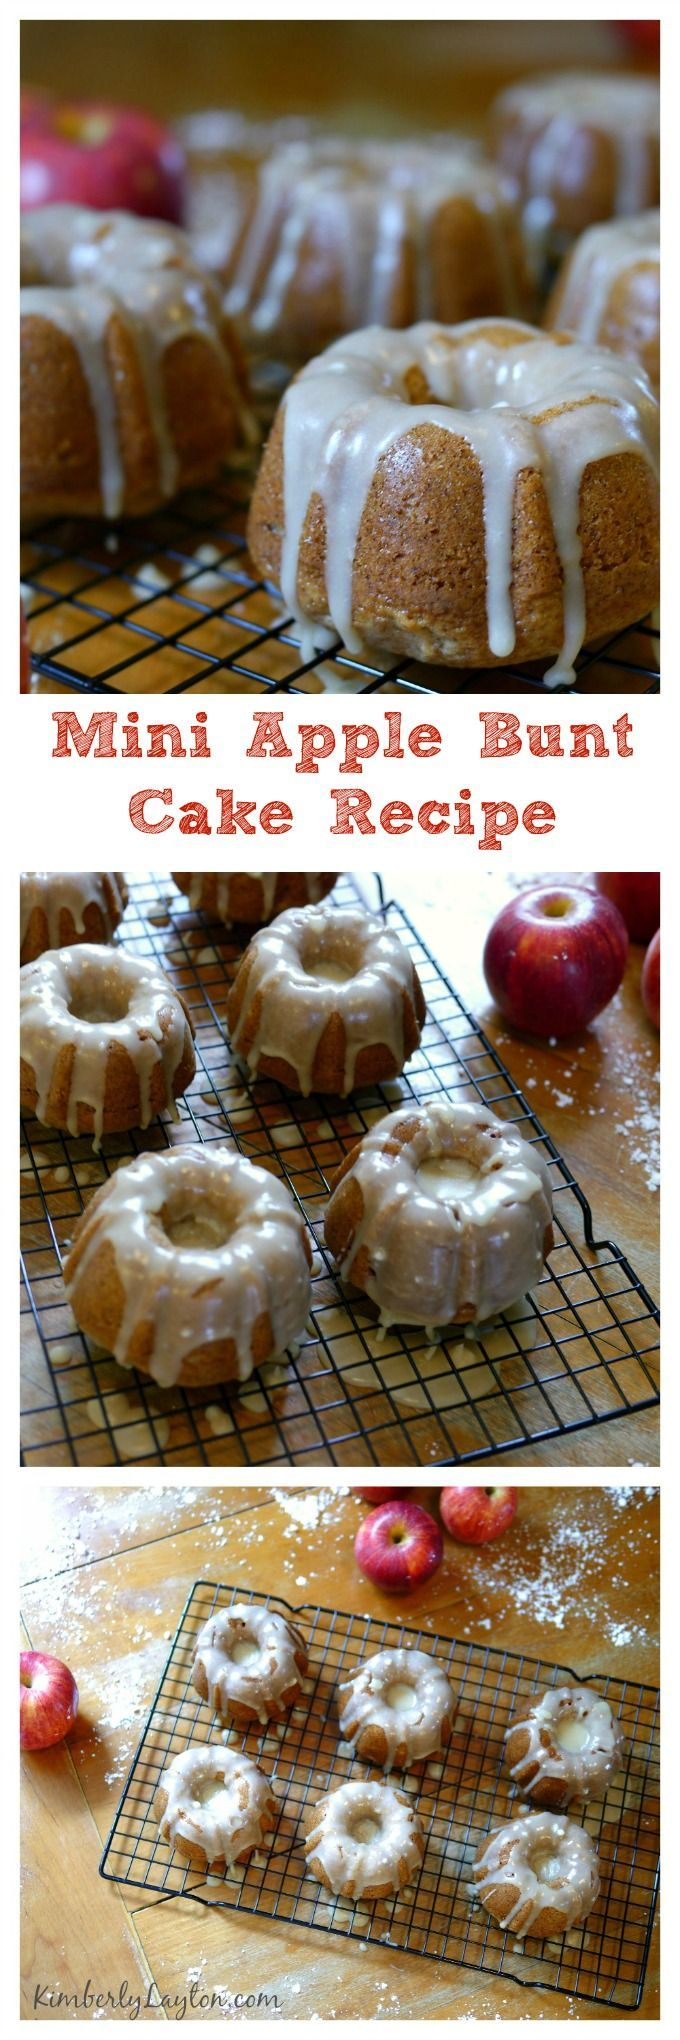 Mini Apple Bundt Cake Recipe...oh my goodness these are awesome.  Don't skimp on the glaze! #bake #recipe